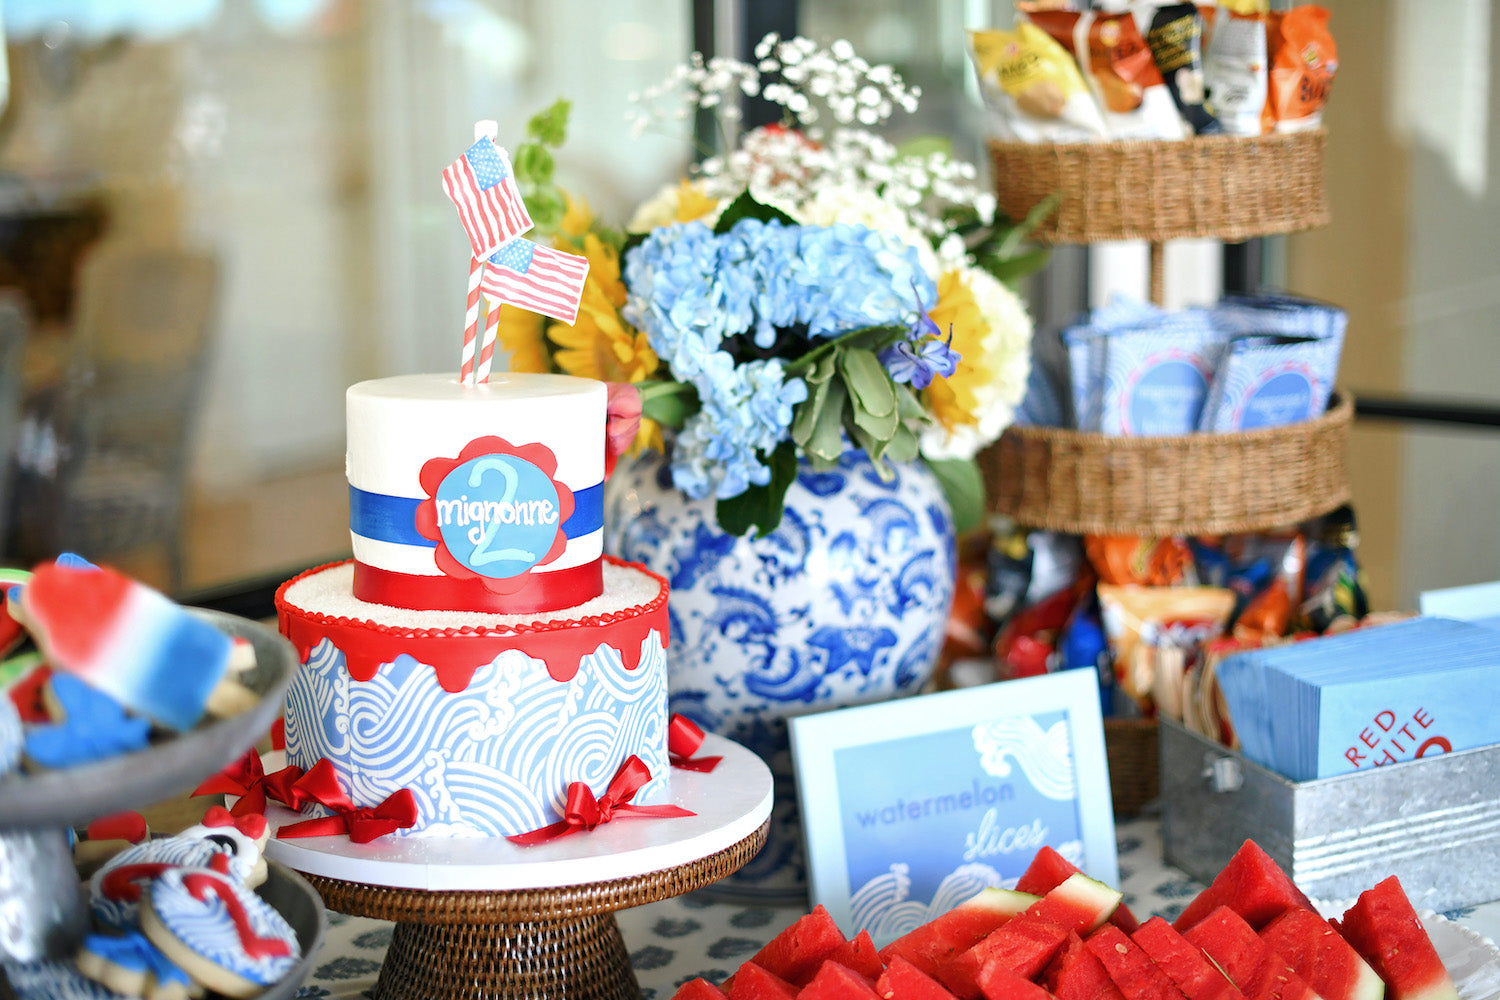 Red, white and blue 4th of July party theme by Caroline Frierson Hernandez from Louisiana - Charlotte sy Dimby